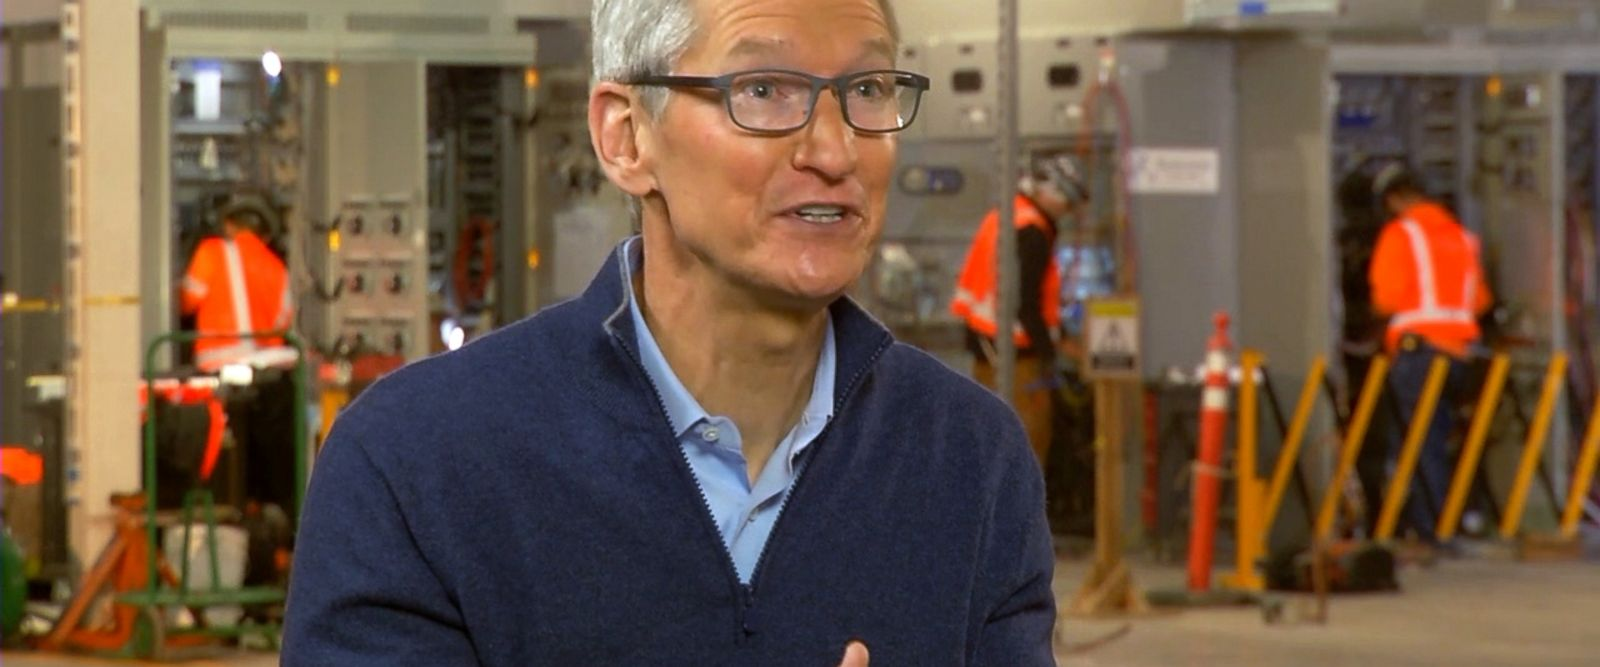 The new tax plan encouraged the company to invest over 350 billion in the US, Apple CEO Tim Cook told ABC News.